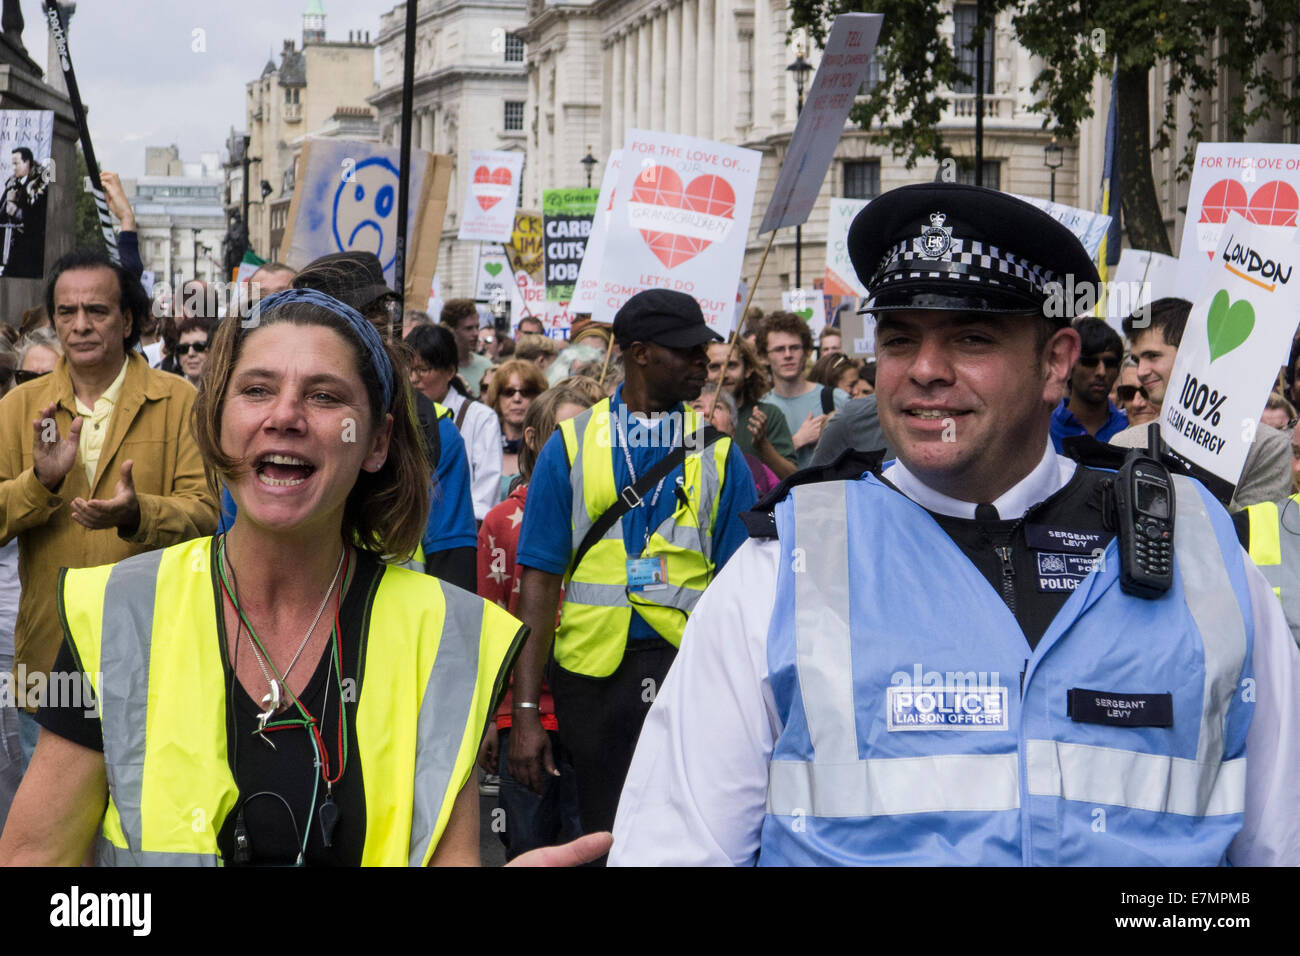 A steward walks next to a police liaison officer at the front of the Climate Change demonstration, London, 21st - Stock Image